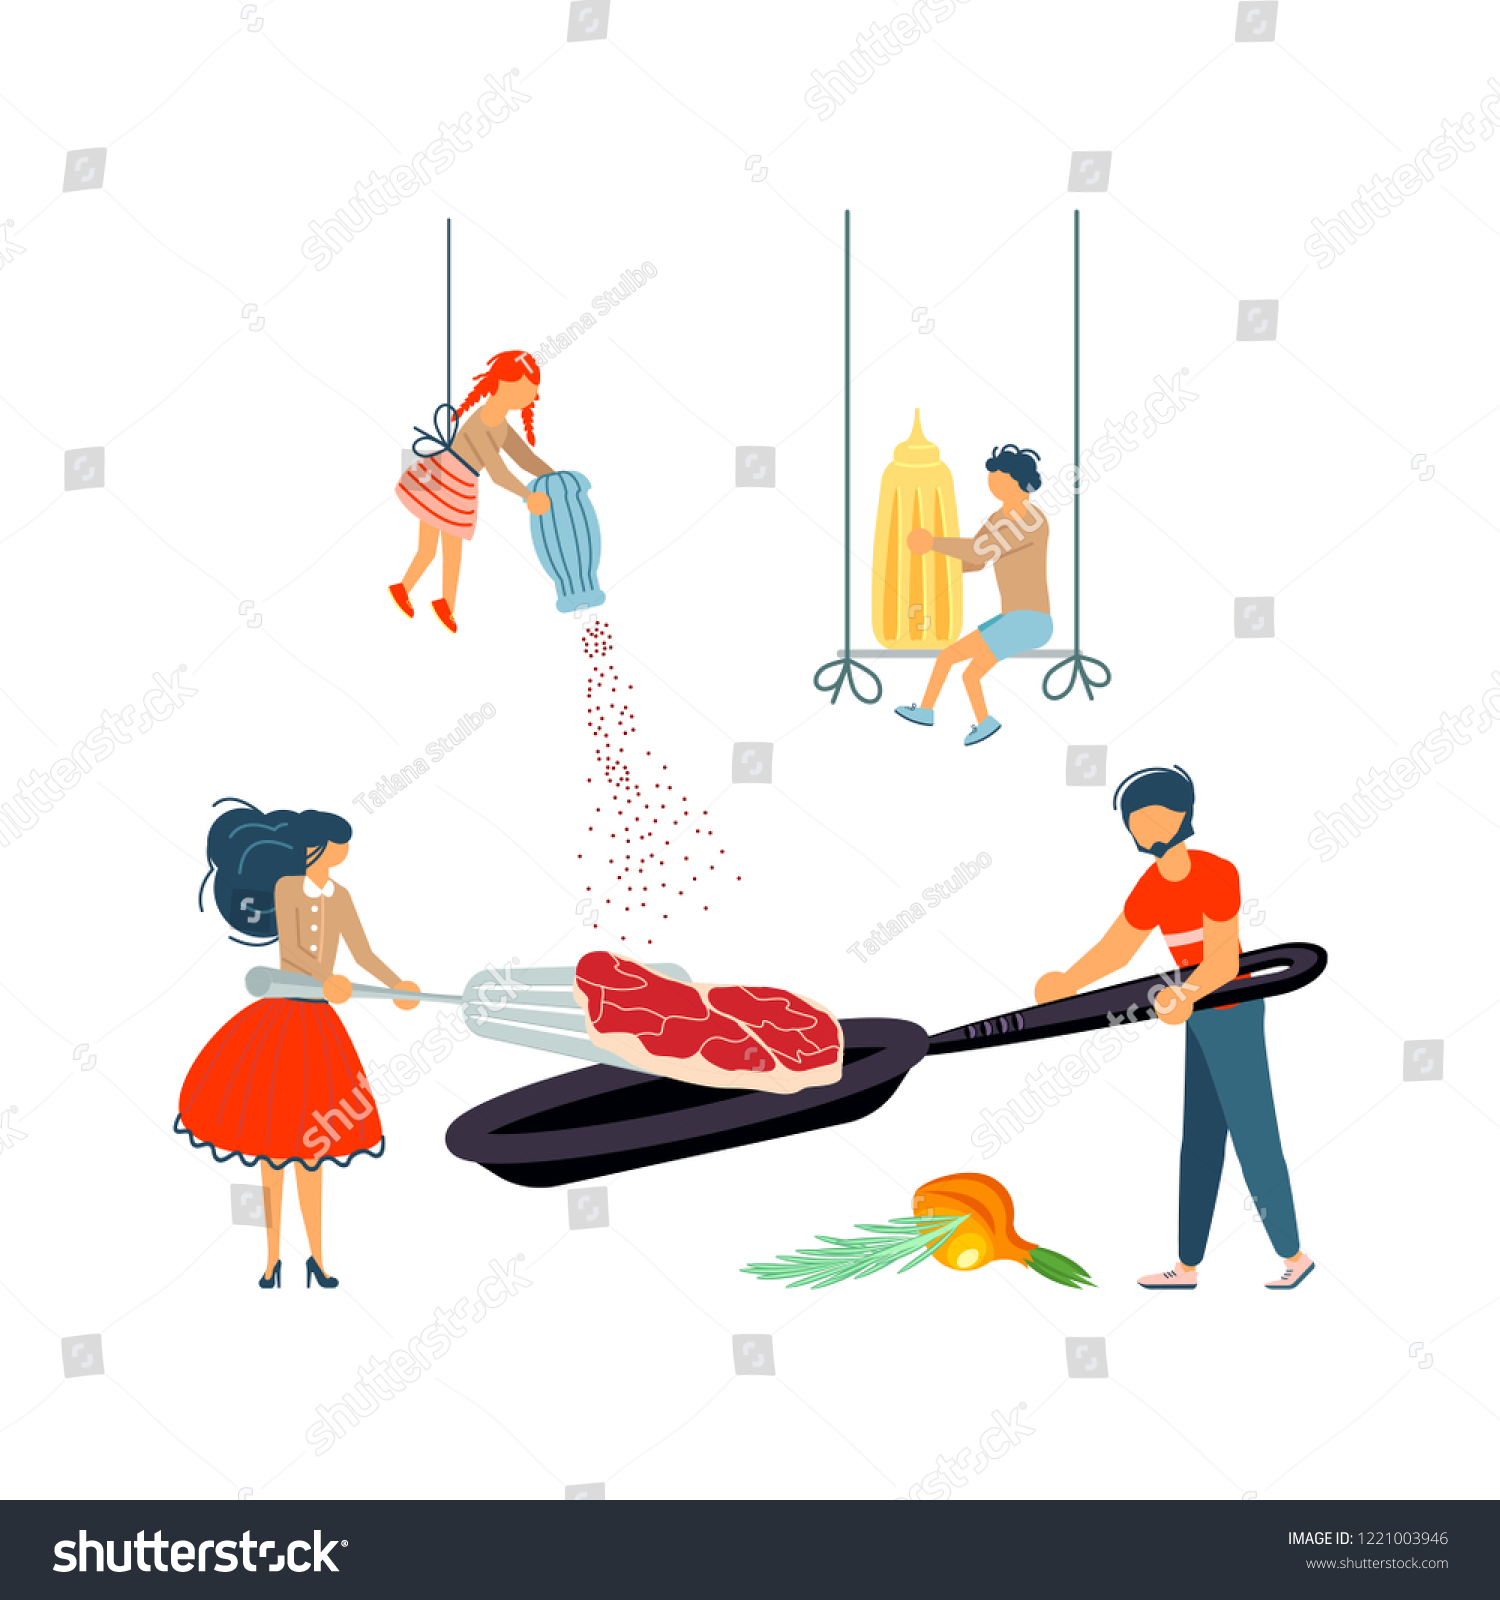 Happy Family Cooking Together Pork Chop Stock Vector (Royalty Free